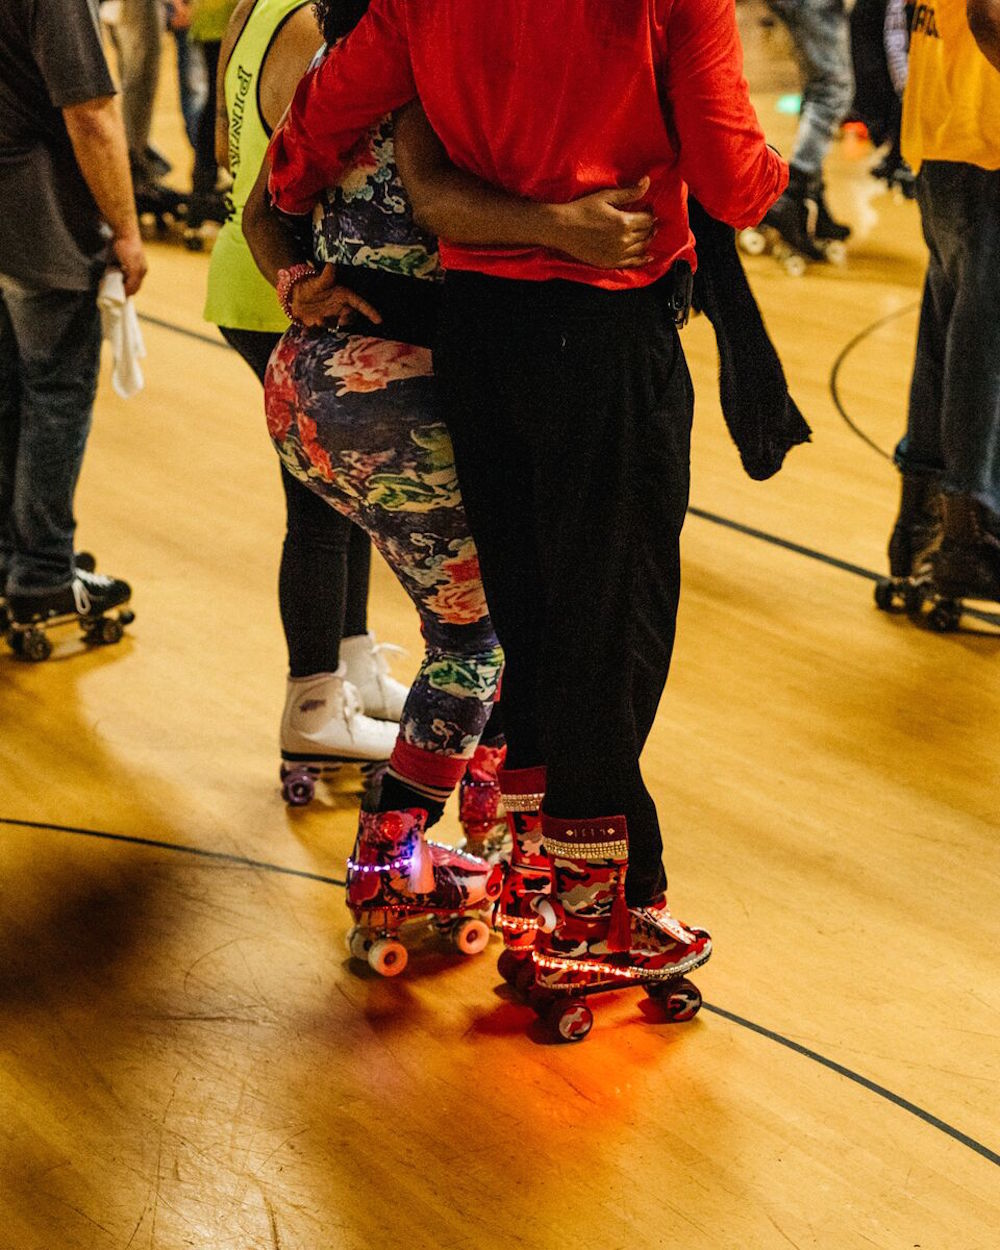 Roller skating rink quad cities - Joe And When You Get Good You Don T Want To Do Anything Else But Teach Somebody It Just Keeps It Going